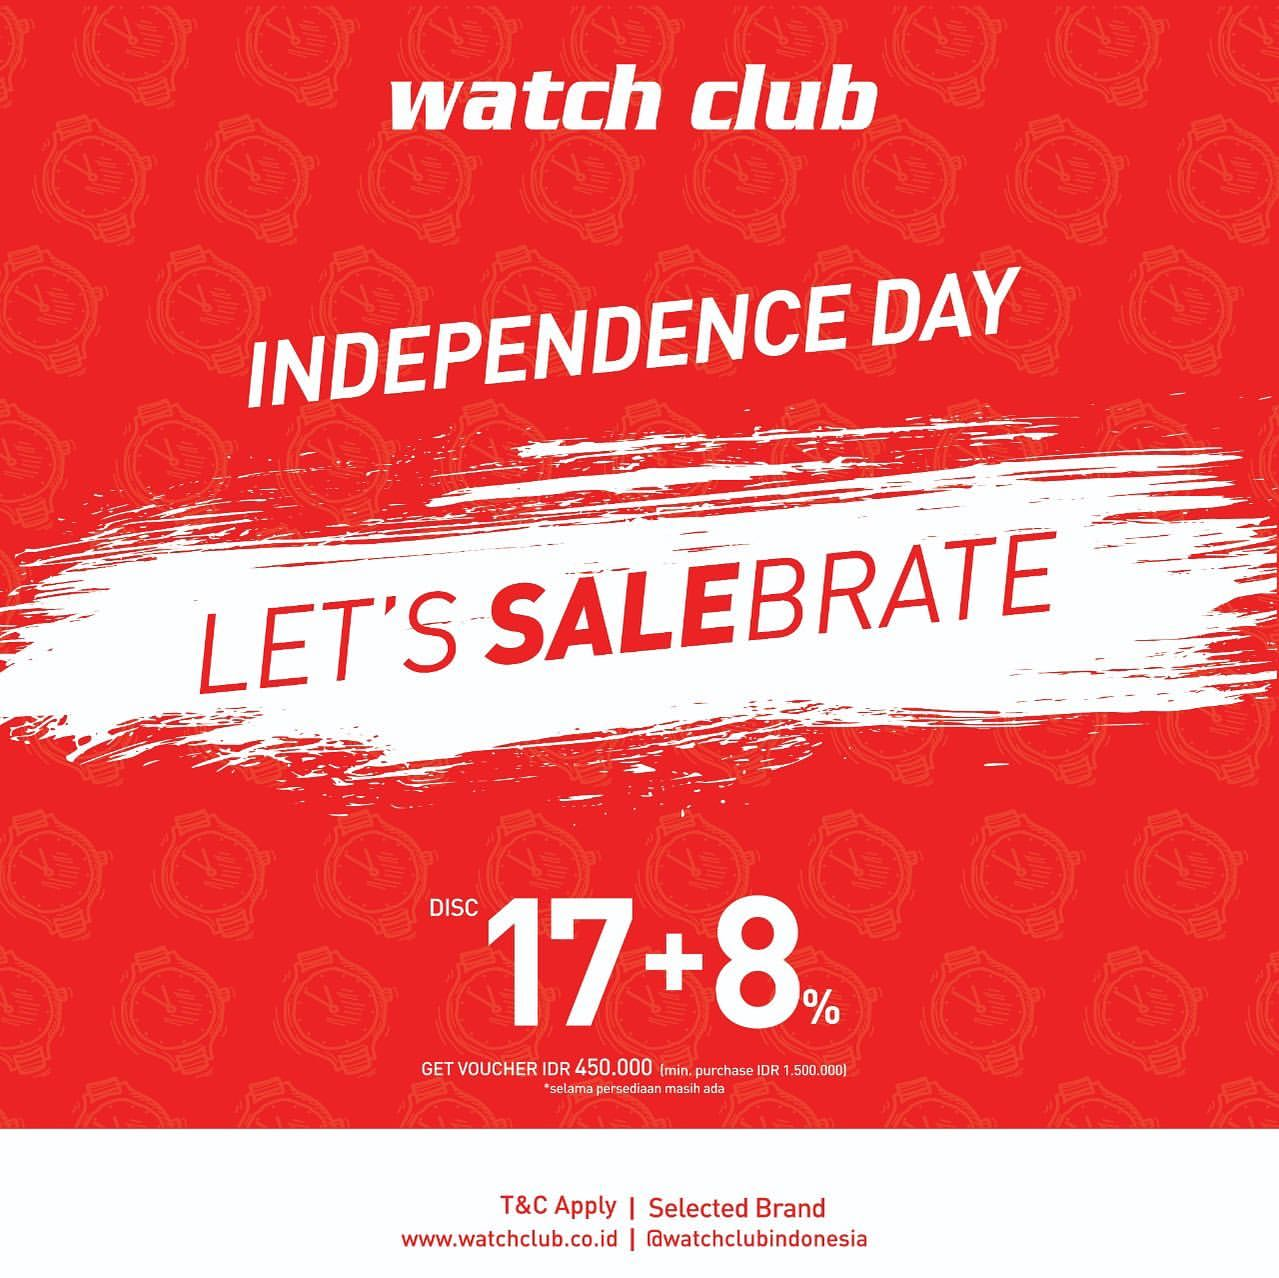 Watch Club Independence Day Promo Discount 17+8%*